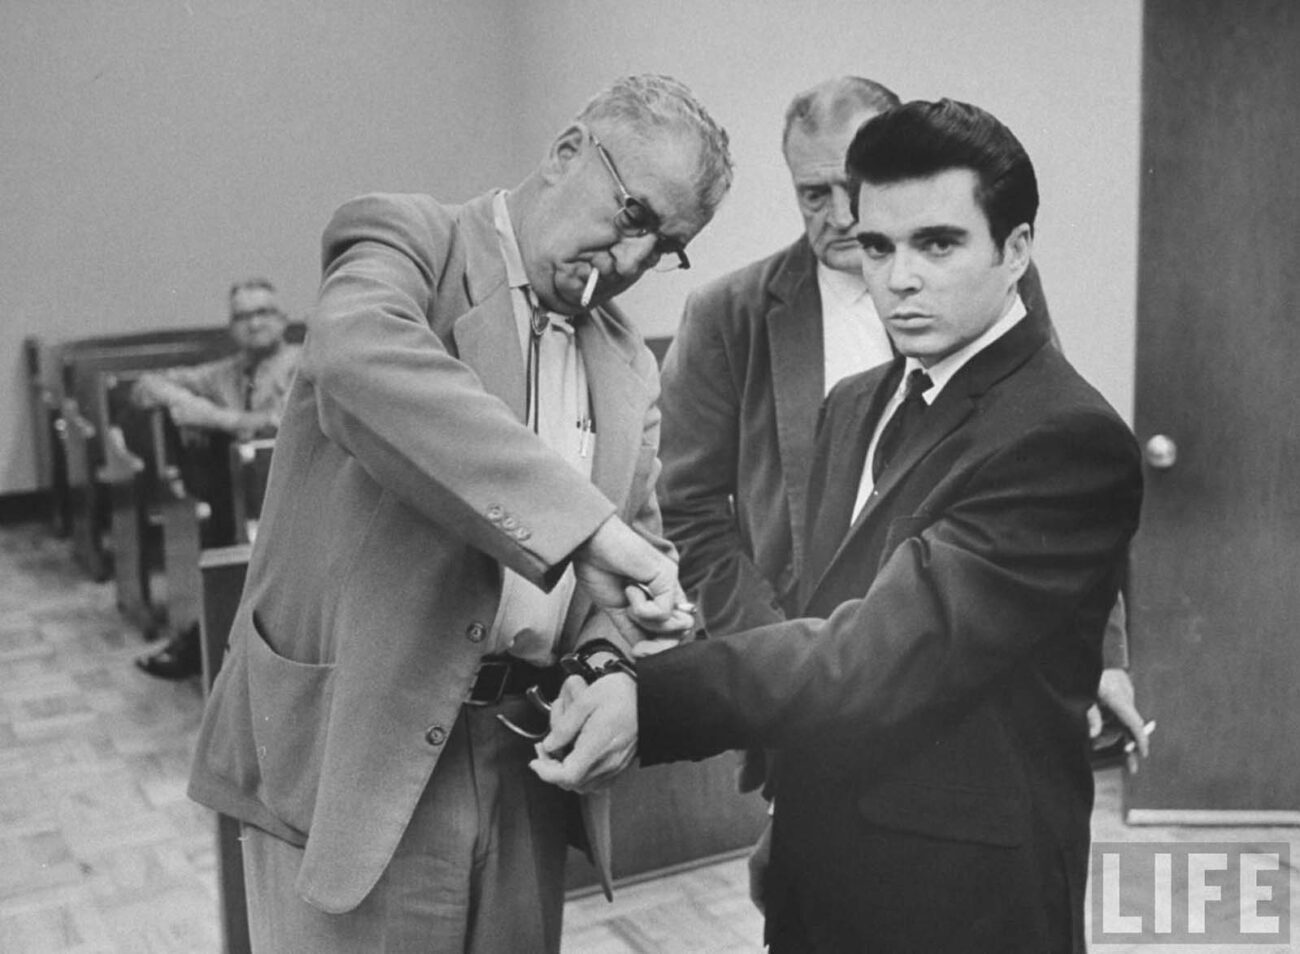 The story of serial killer Charles Schmid may have fallen into obscurity, but it's one of the creepiest true-crimes. Here's what we know.